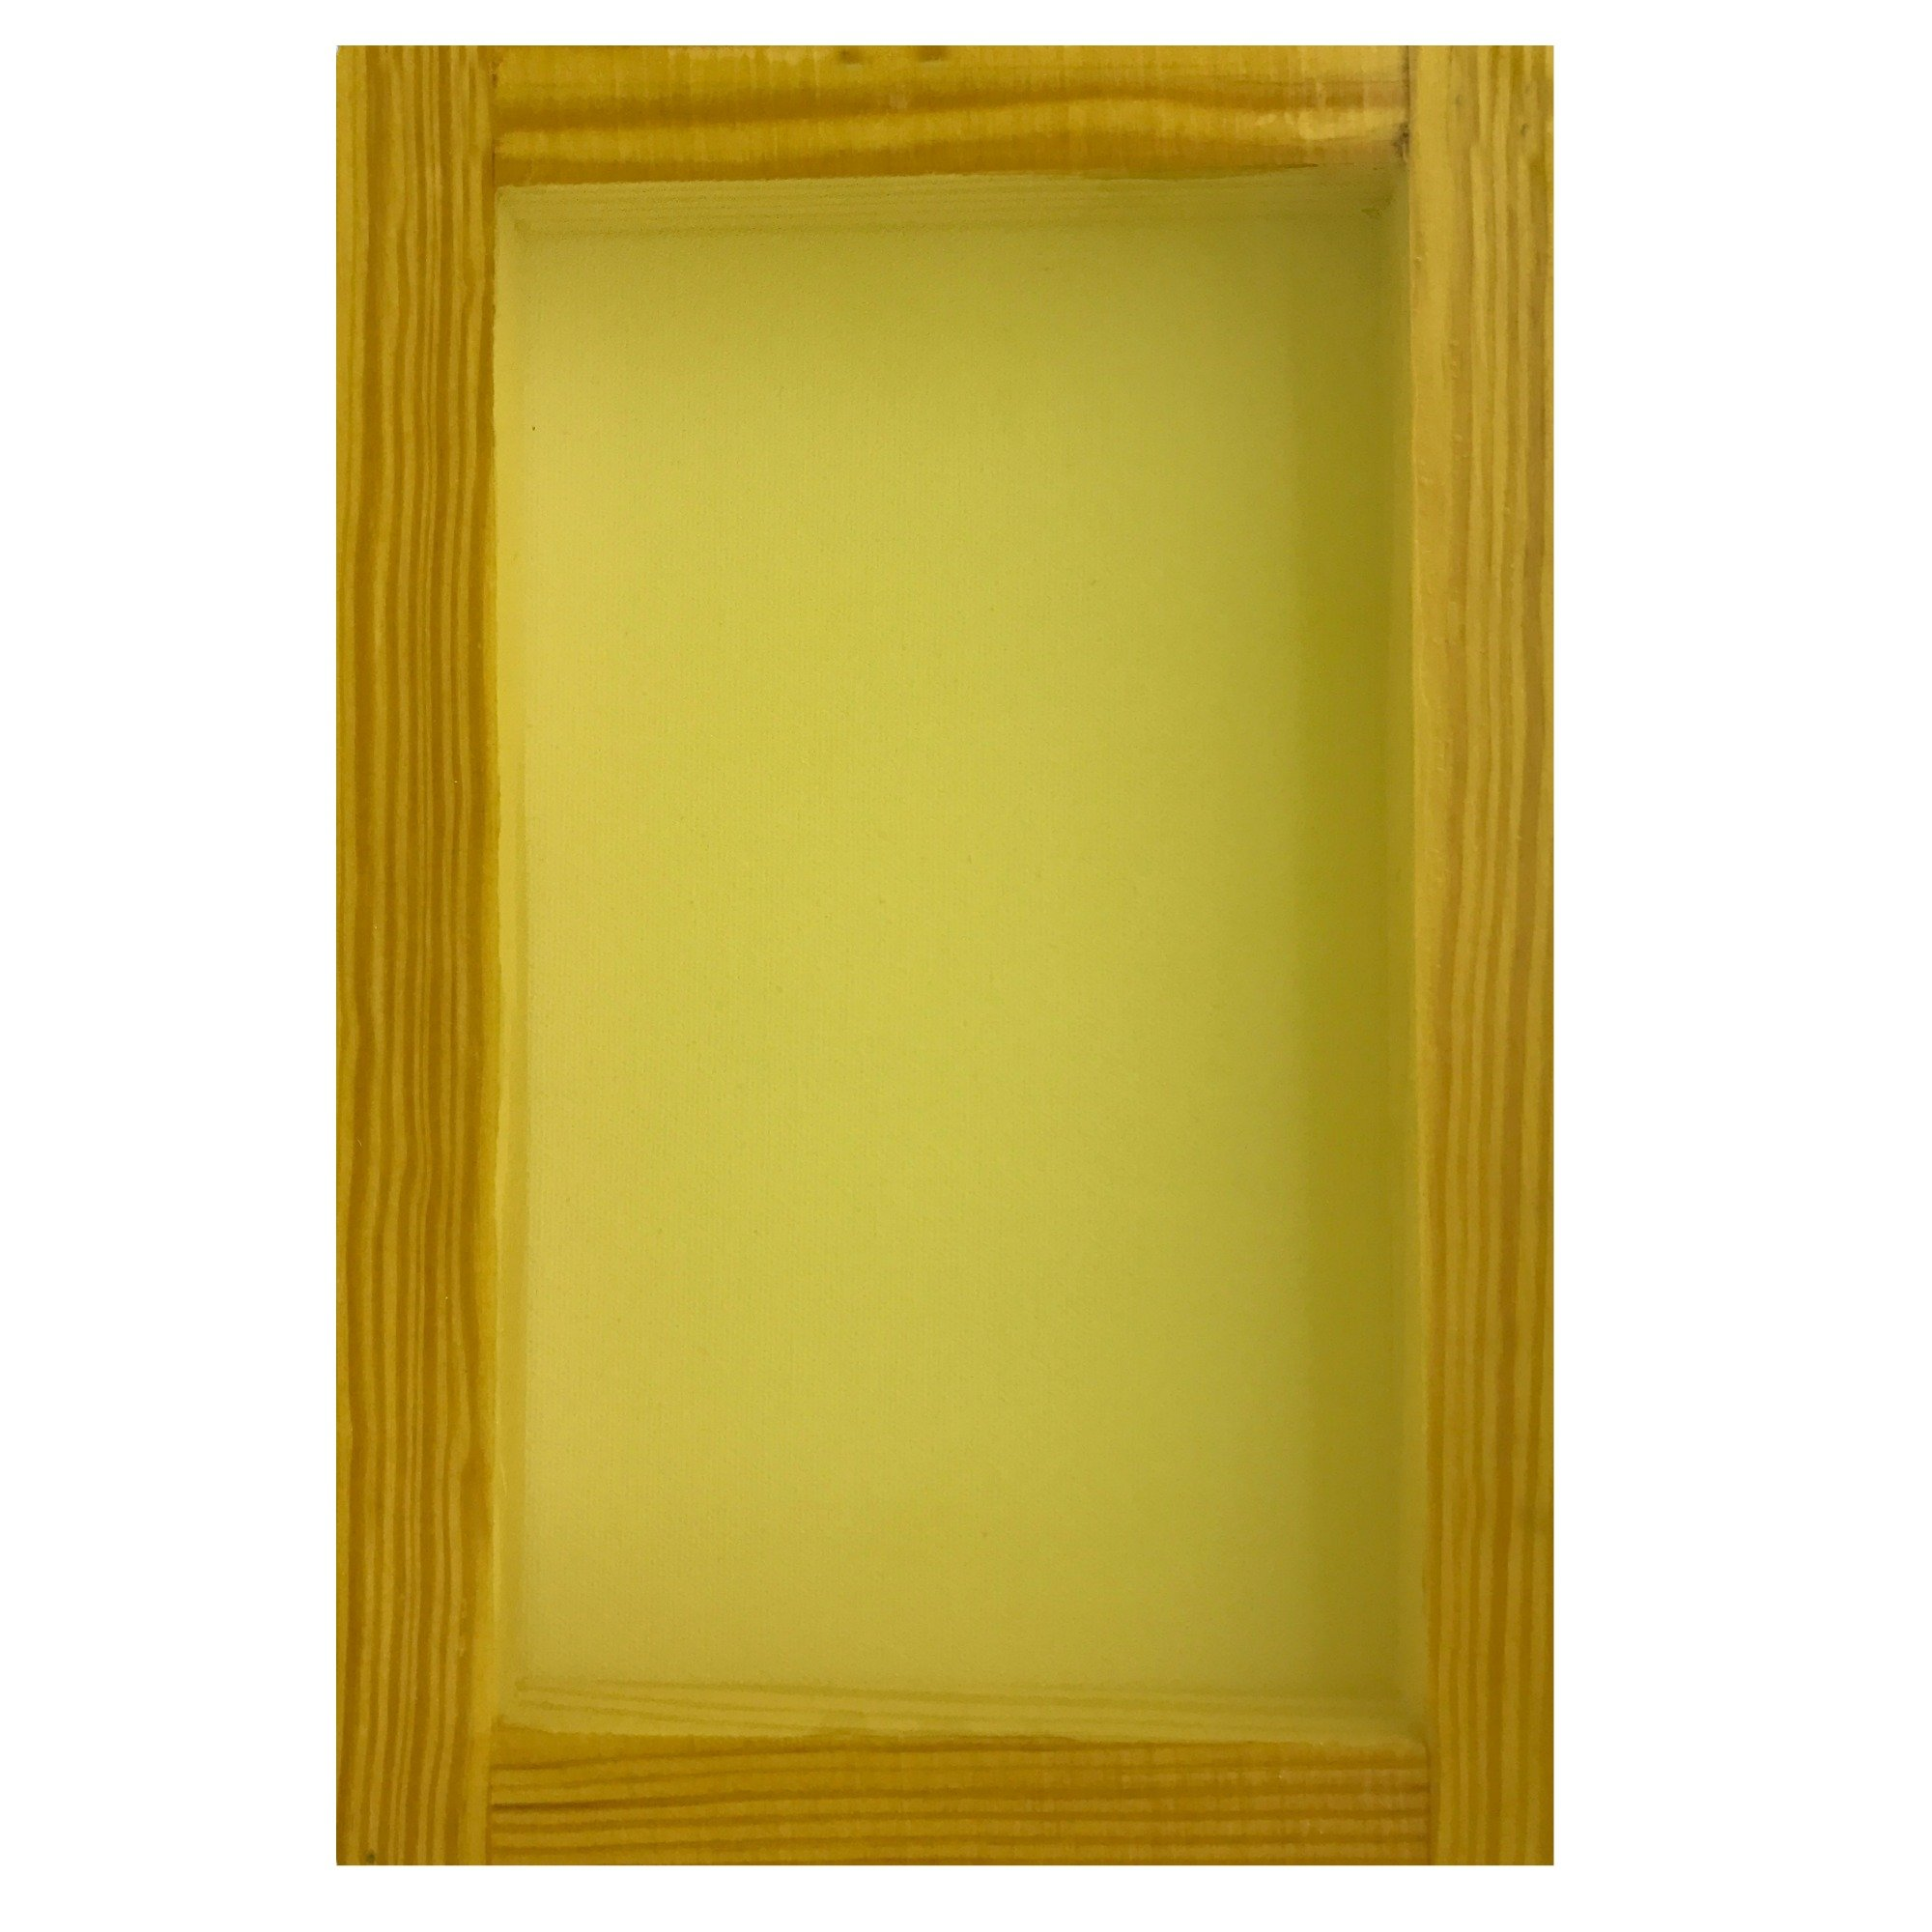 SILK SCREEN FRAME for SCREEN PRINTING (8x12) 110 mesh White or Yellow